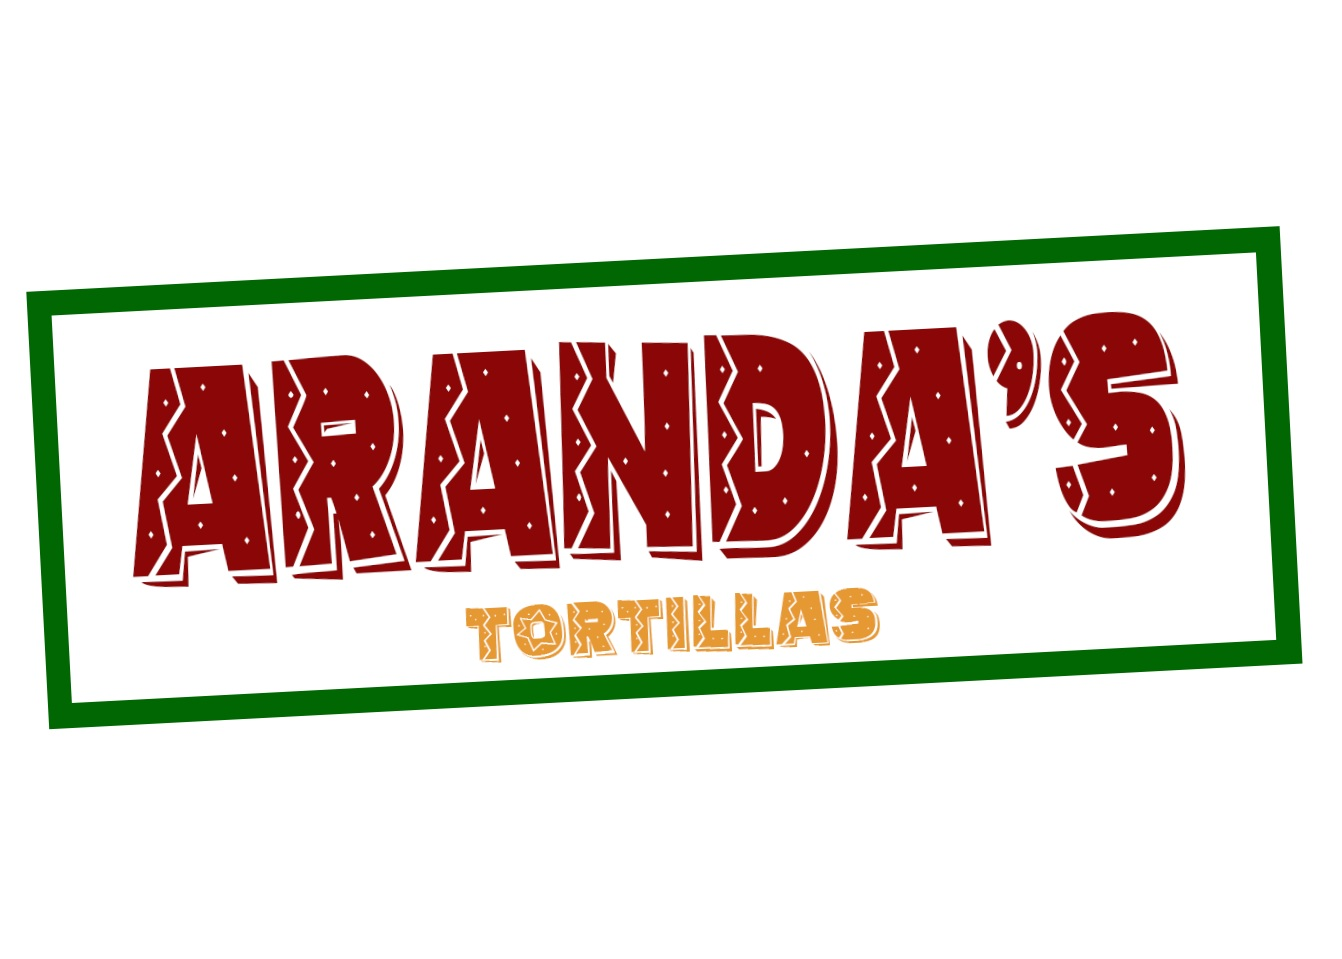 aranda%27s+Tortillas+color+png.jpg